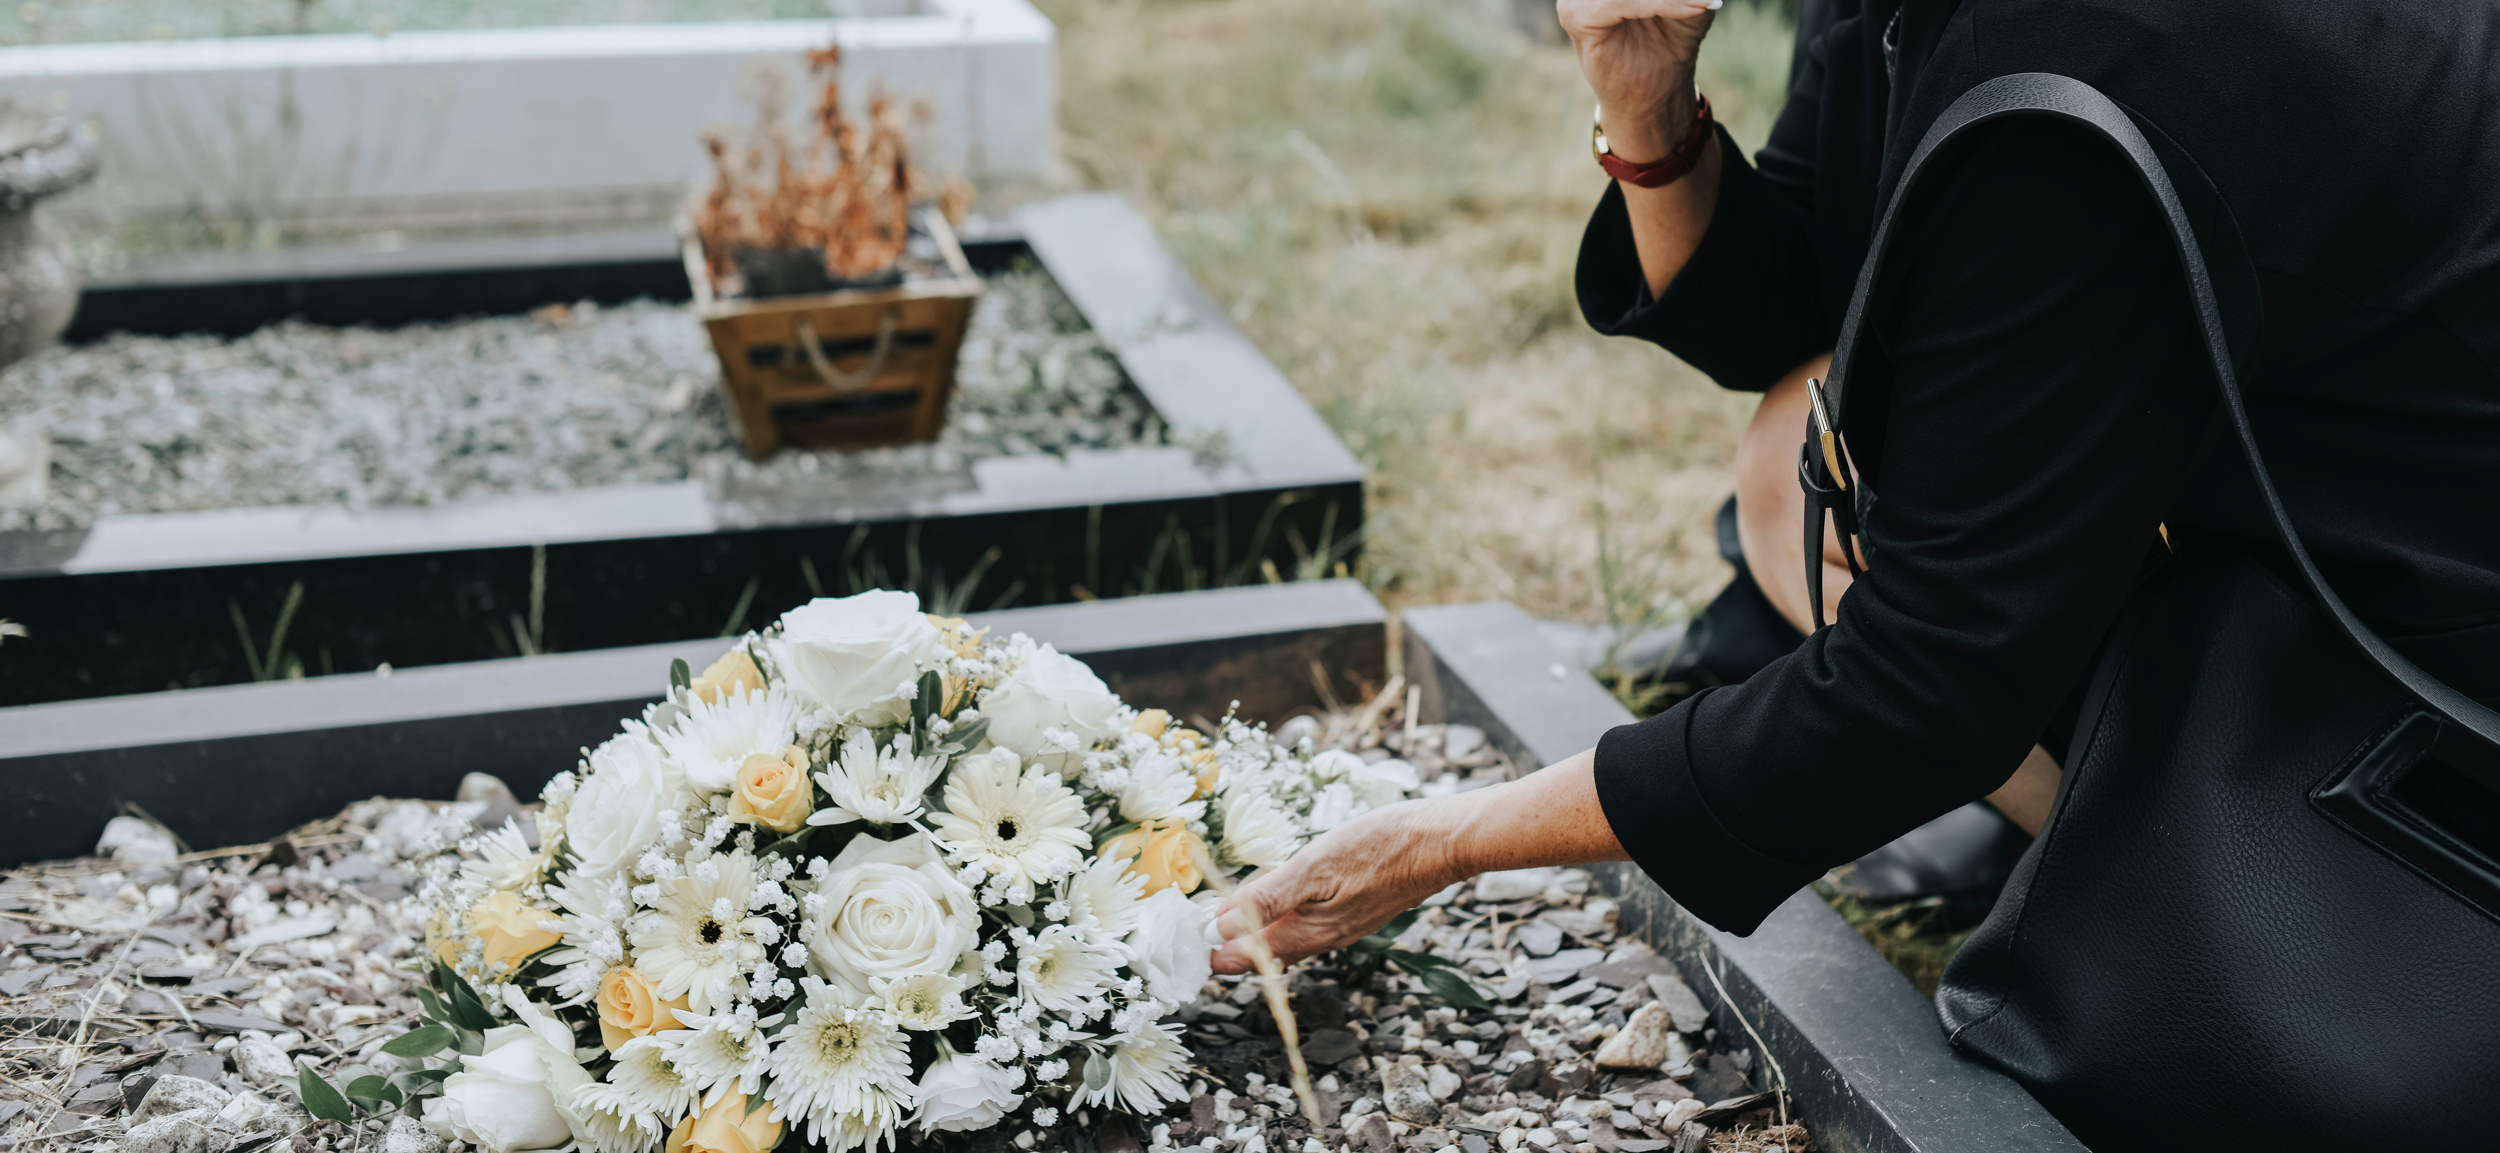 Woman standing over grave